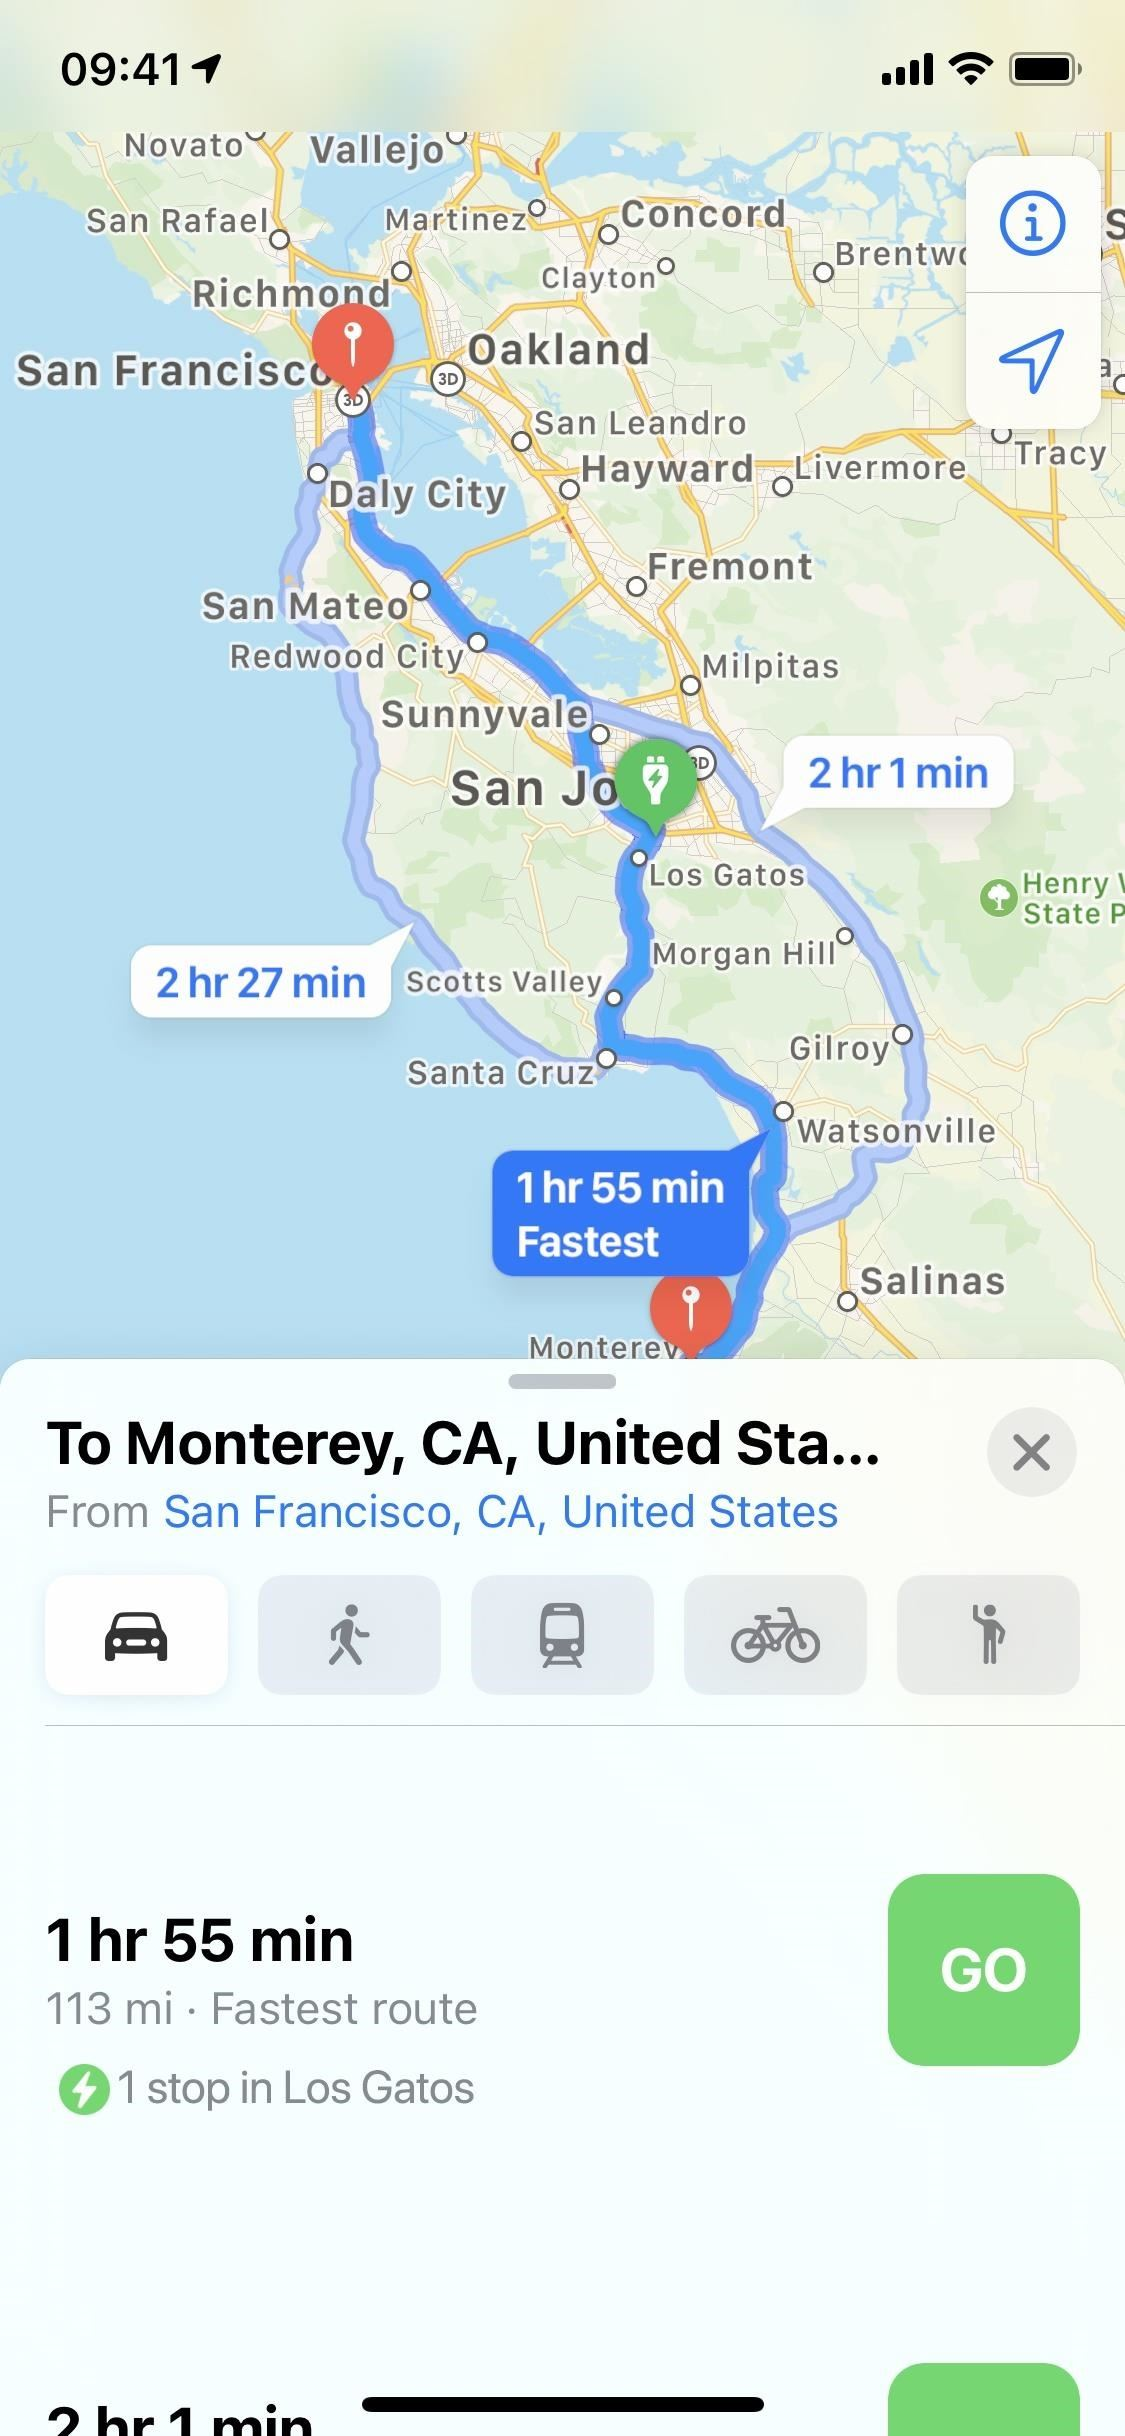 16 new Apple Maps features for iPhone in iOS 14, including bike lanes, new widgets and city guides